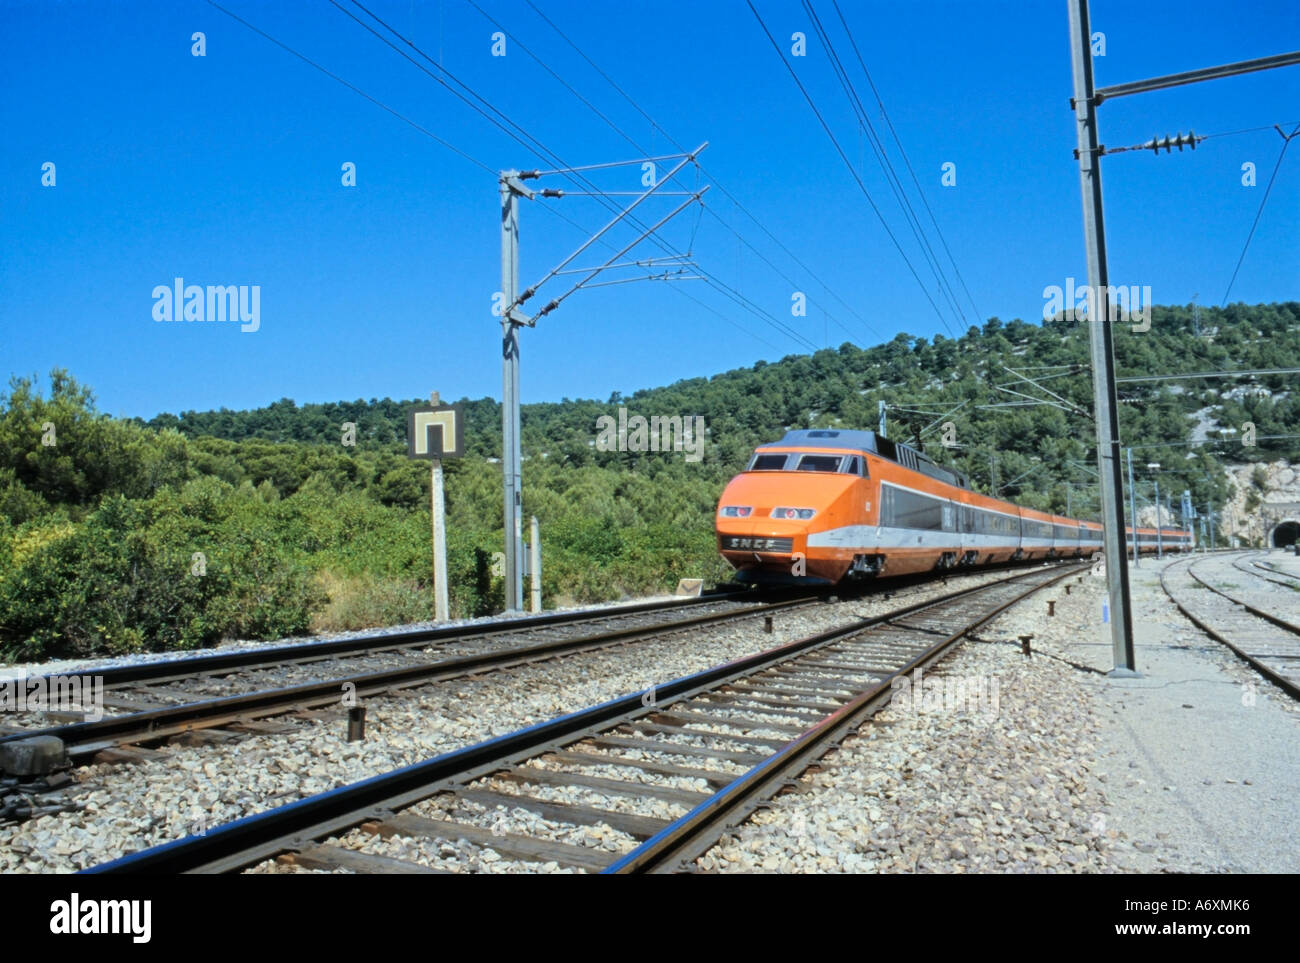 TGV French High Speed Train in the original Orange, Grey and White livery, passing Cassis South of France Stock Photo